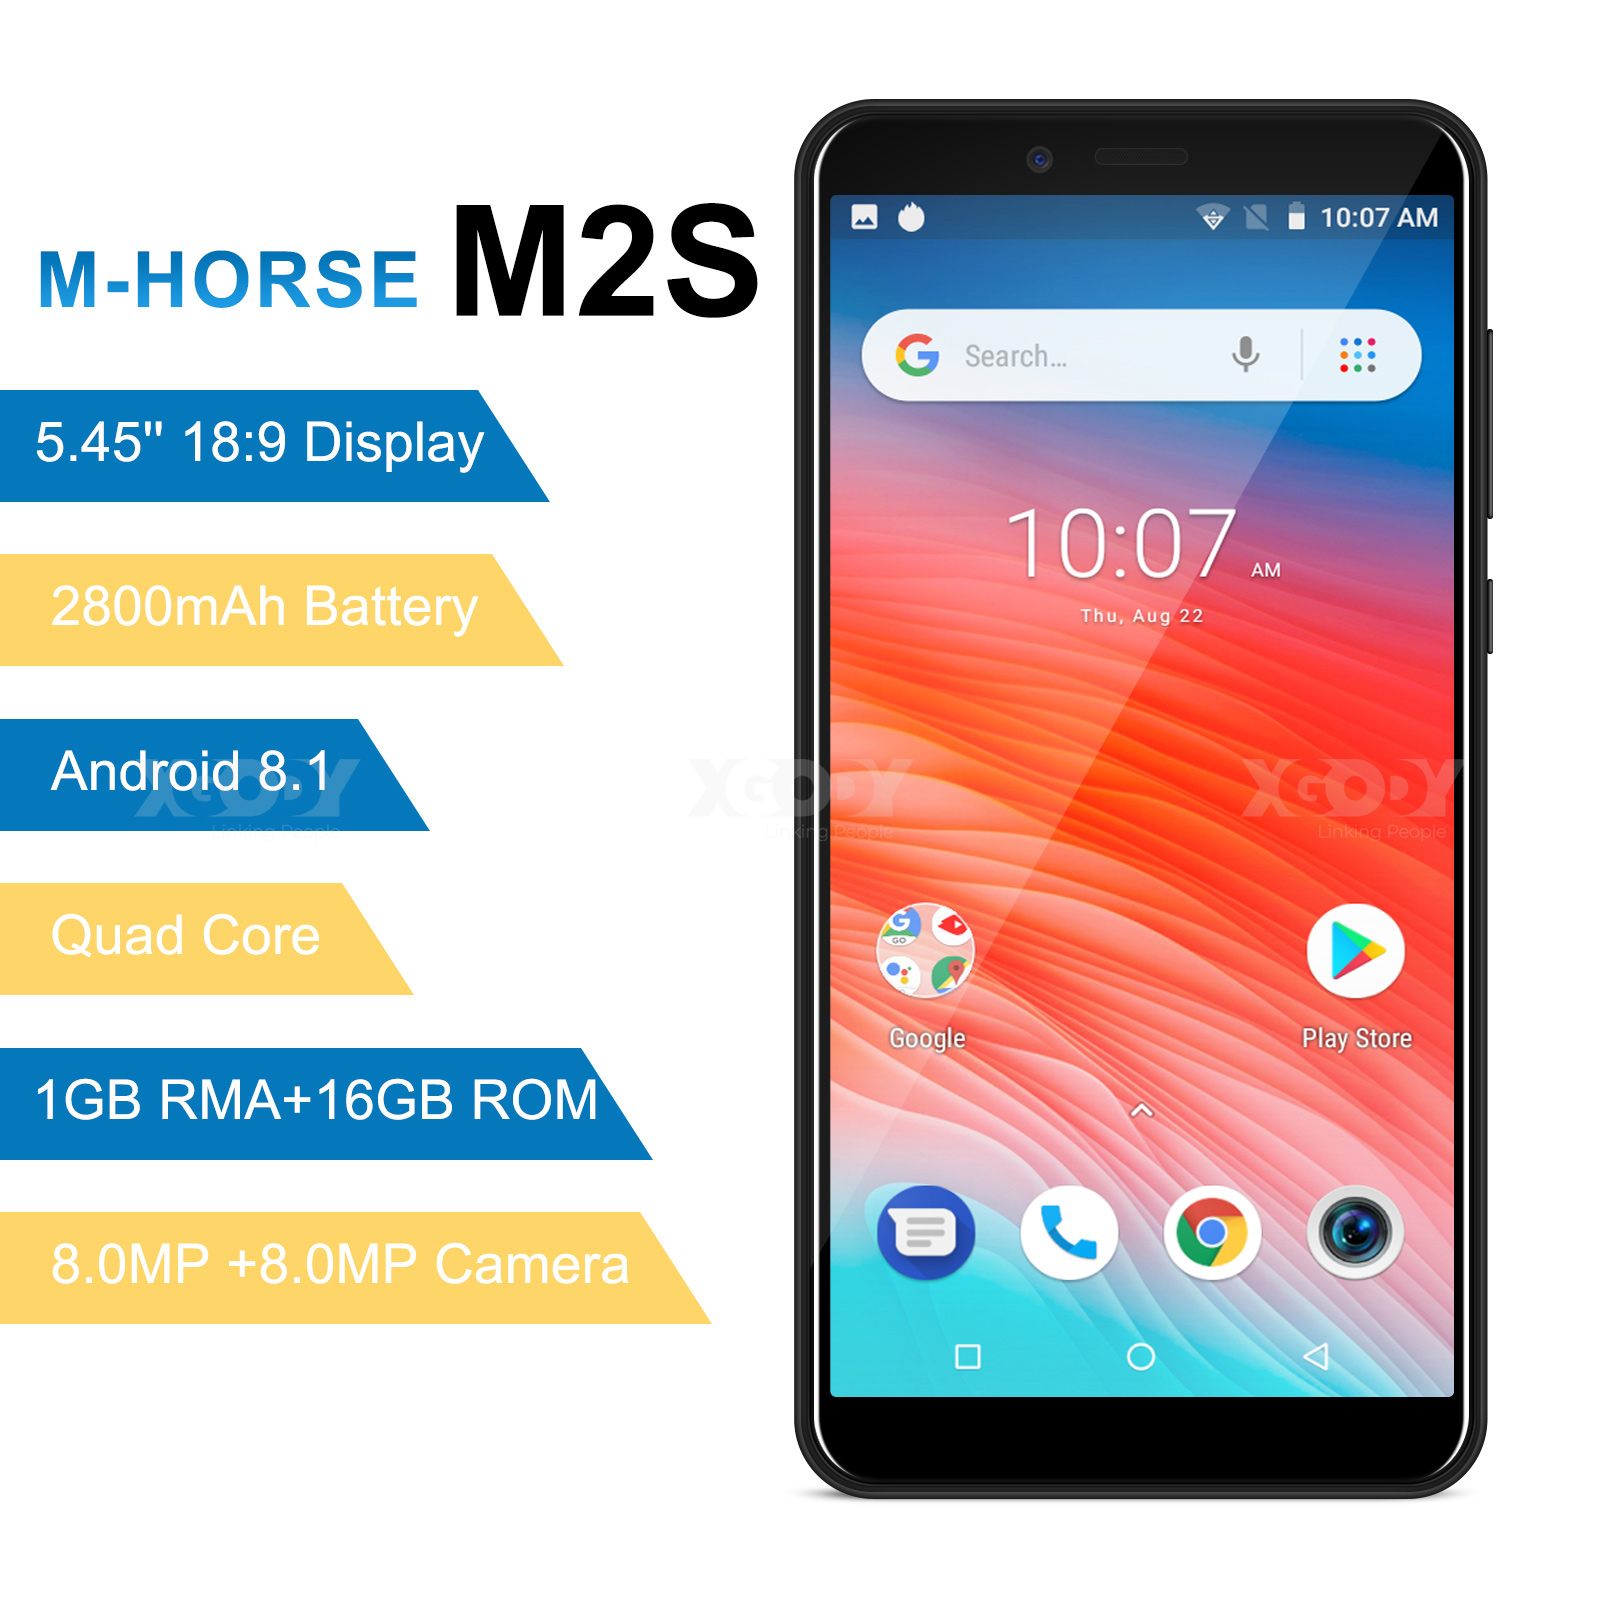 M-HORSE M2S Smartphone Quad Core Android 8.1 2800mAh Cellphone 1GB+16GB 5.45 Inch 18:9 Screen Dual Camera 3G Mobile Phone